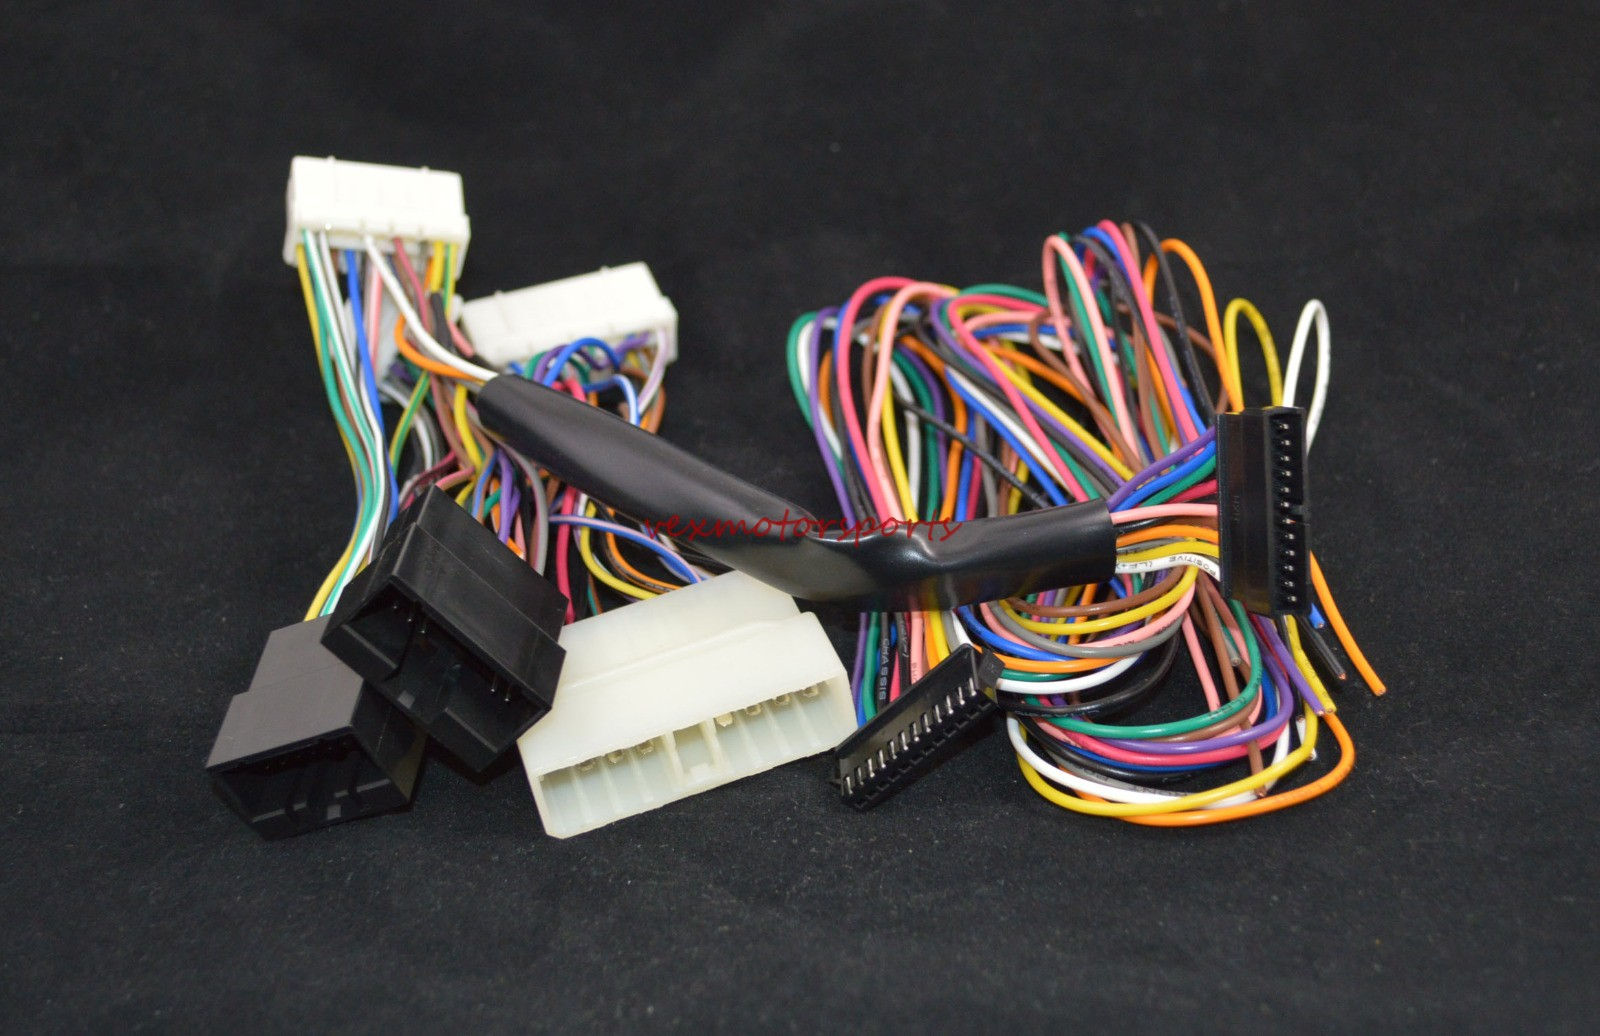 Ecu Wiring Harness Adapter Diagrams Ford Trailer Nnr Obd0 To Obd1 Conversion Jumper Adaptertrailerlites